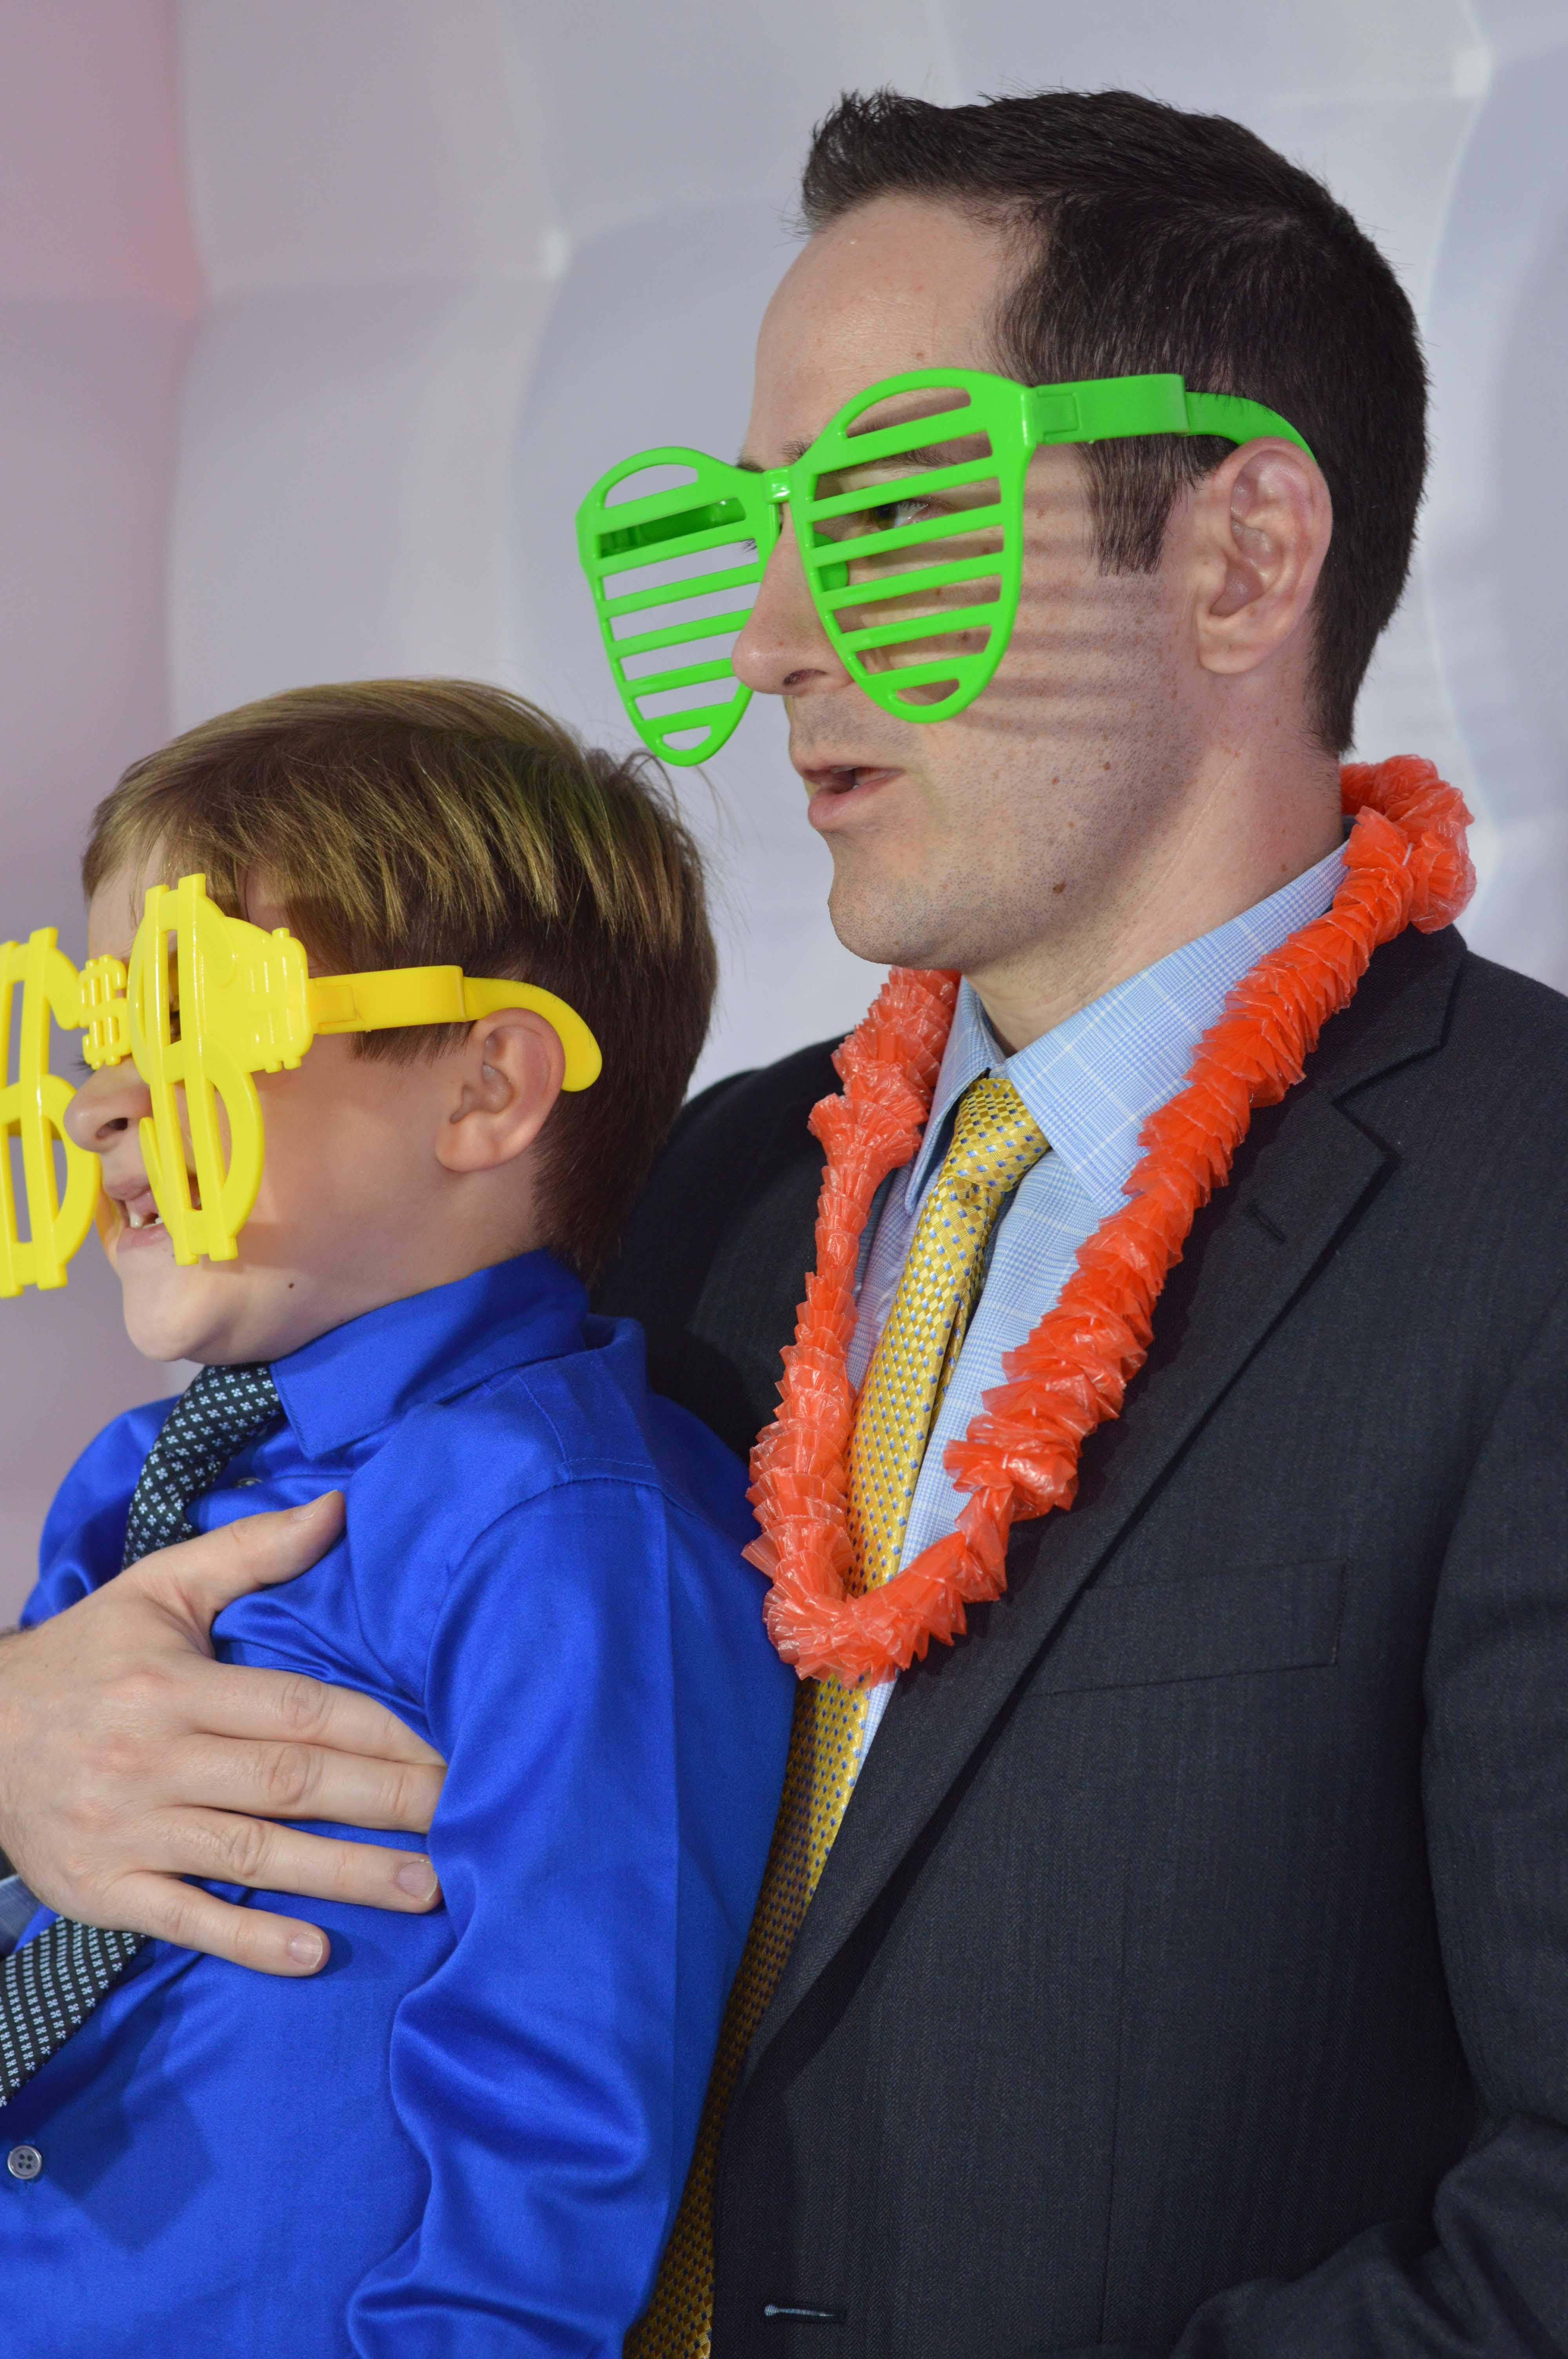 Dad and son--chill factor high in the Photo Booth